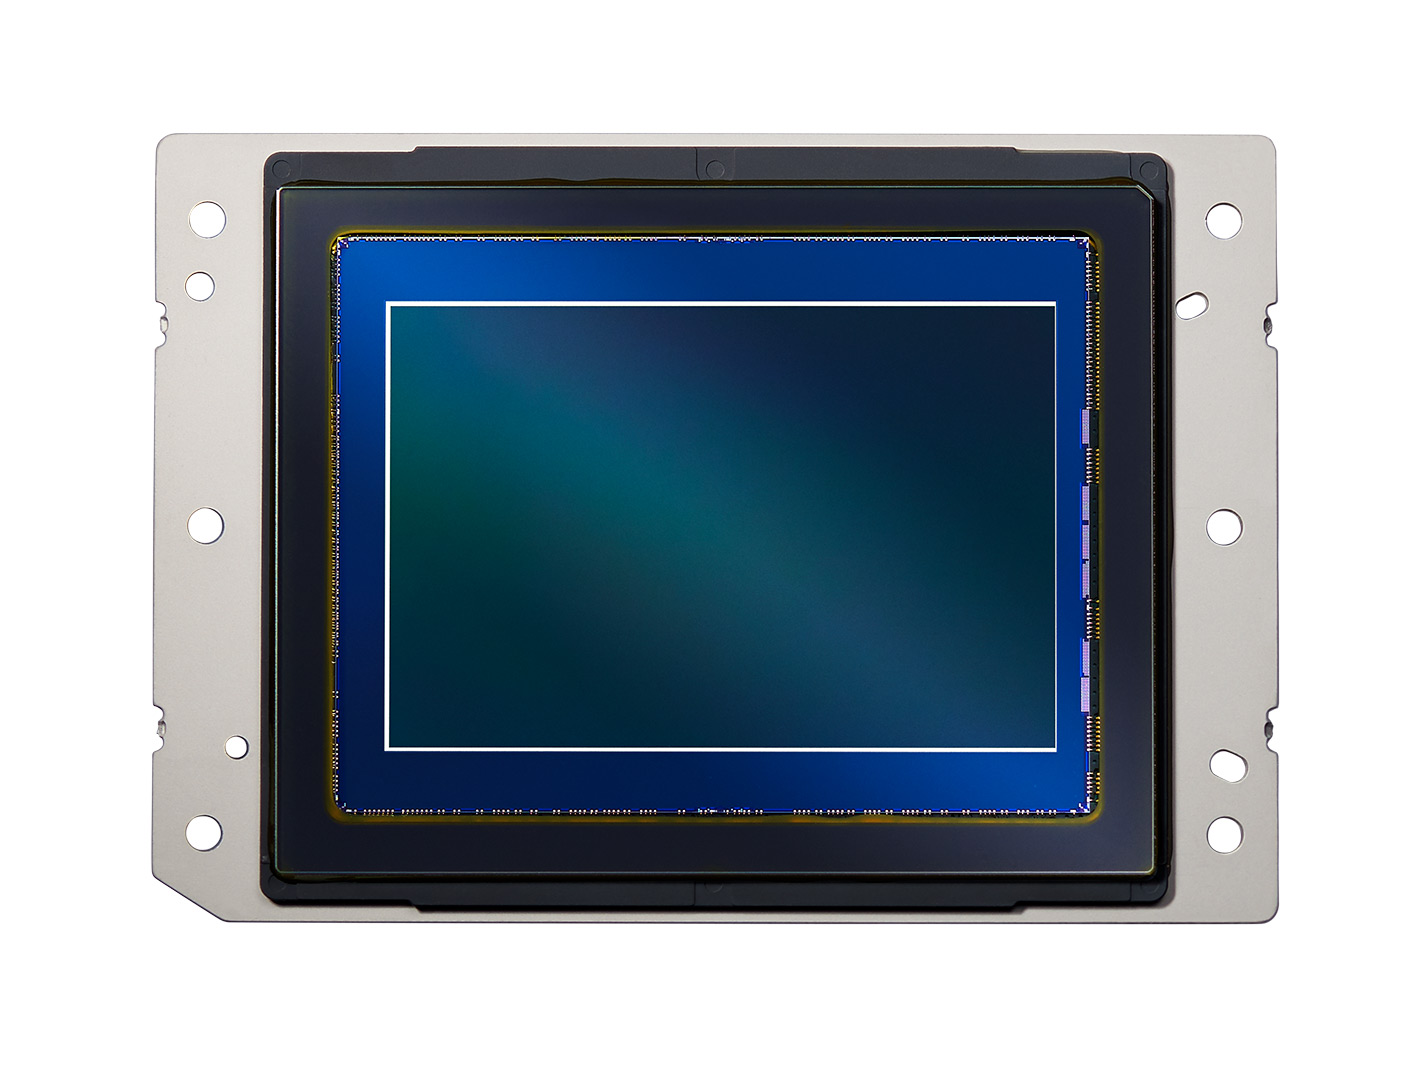 Nikon D850 Sensor Confirmed As Sony Made Digital Photography Review Transducer Current Limiter Circuit Electronics Forum Circuits It Can Be Interesting For The More Tech Inclined Photographer To Speculate About Where Camera Makers Are Getting Their Sensors From